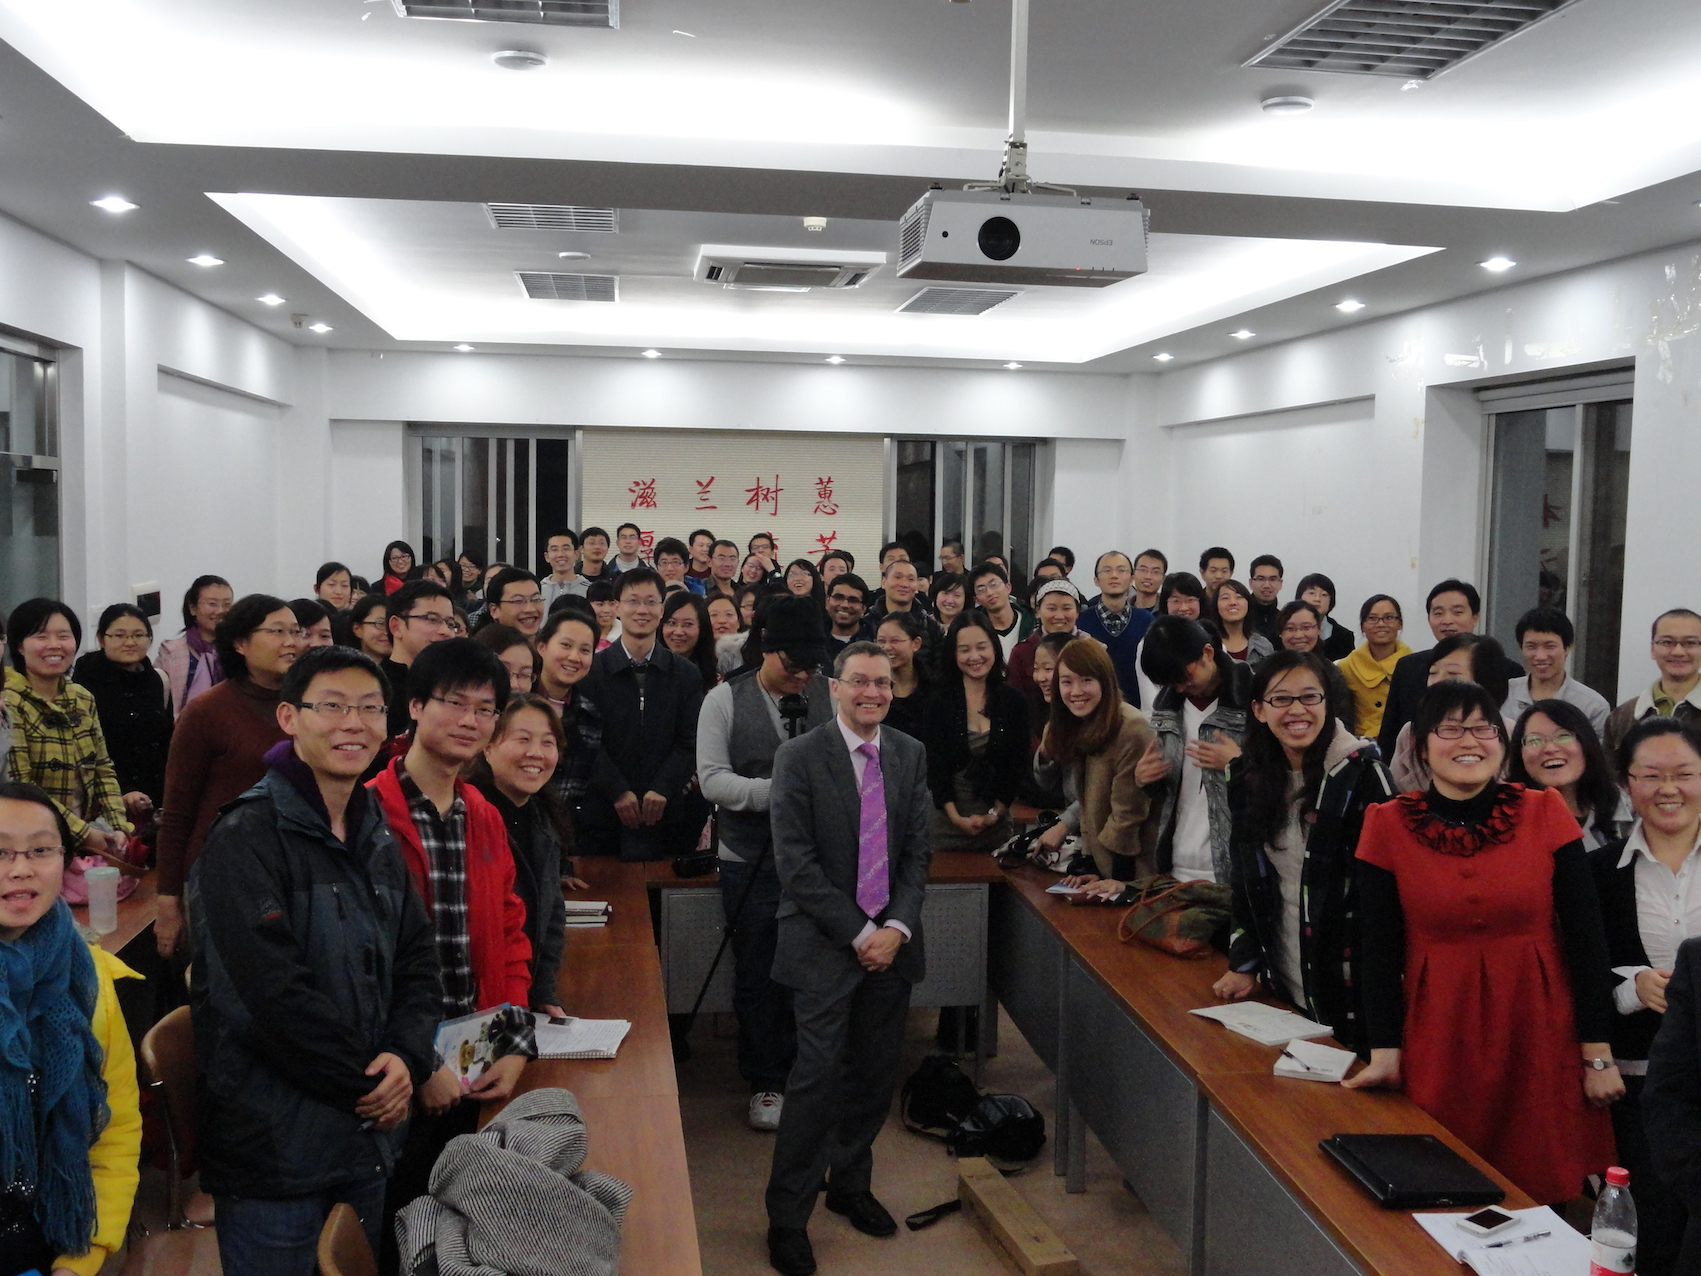 chinese students and their teacher pose for a picture in their classroom